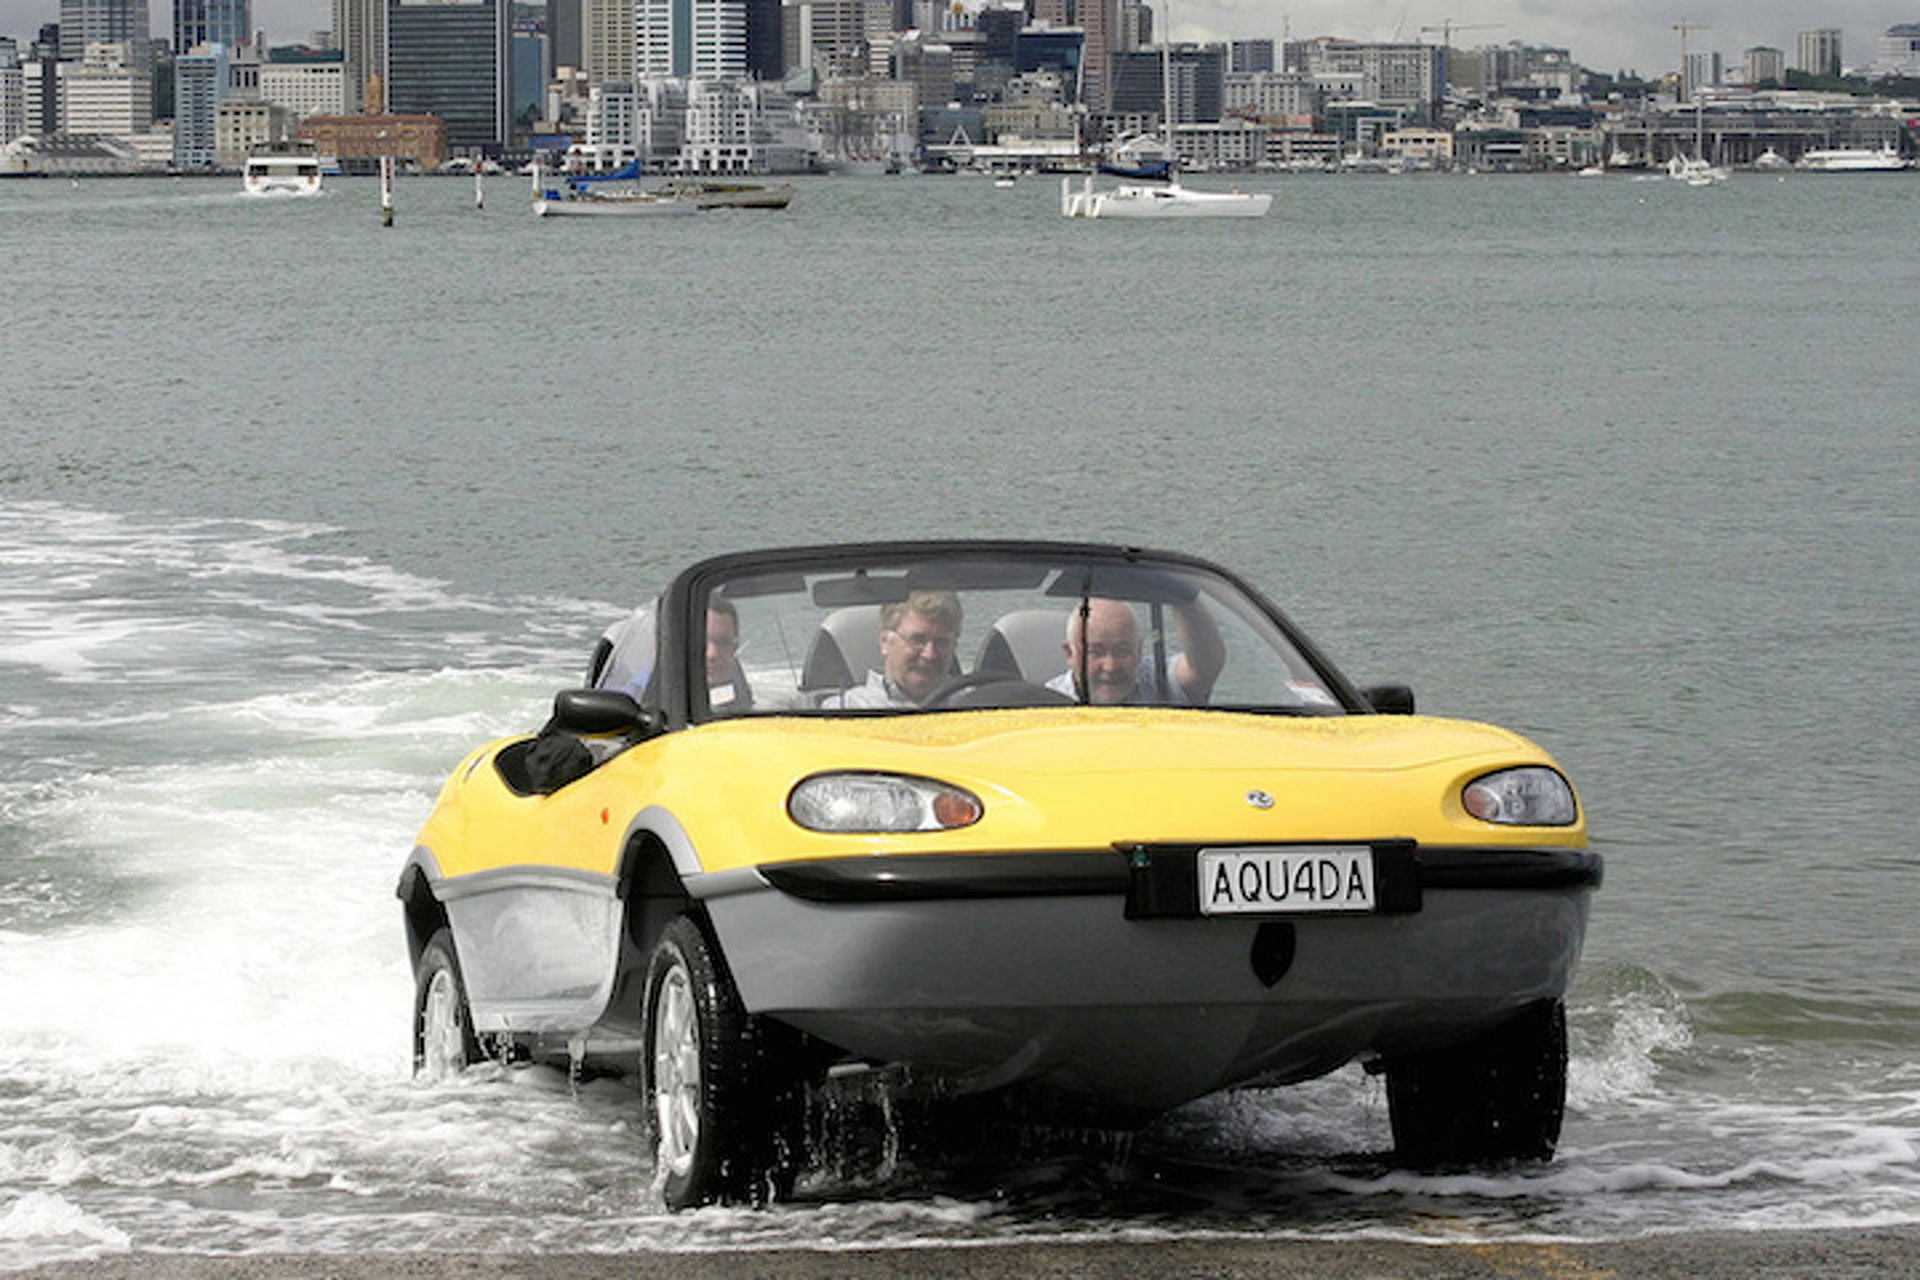 Gibbs is Selling Off 20 of Its Aquada Amphibious Sports Cars